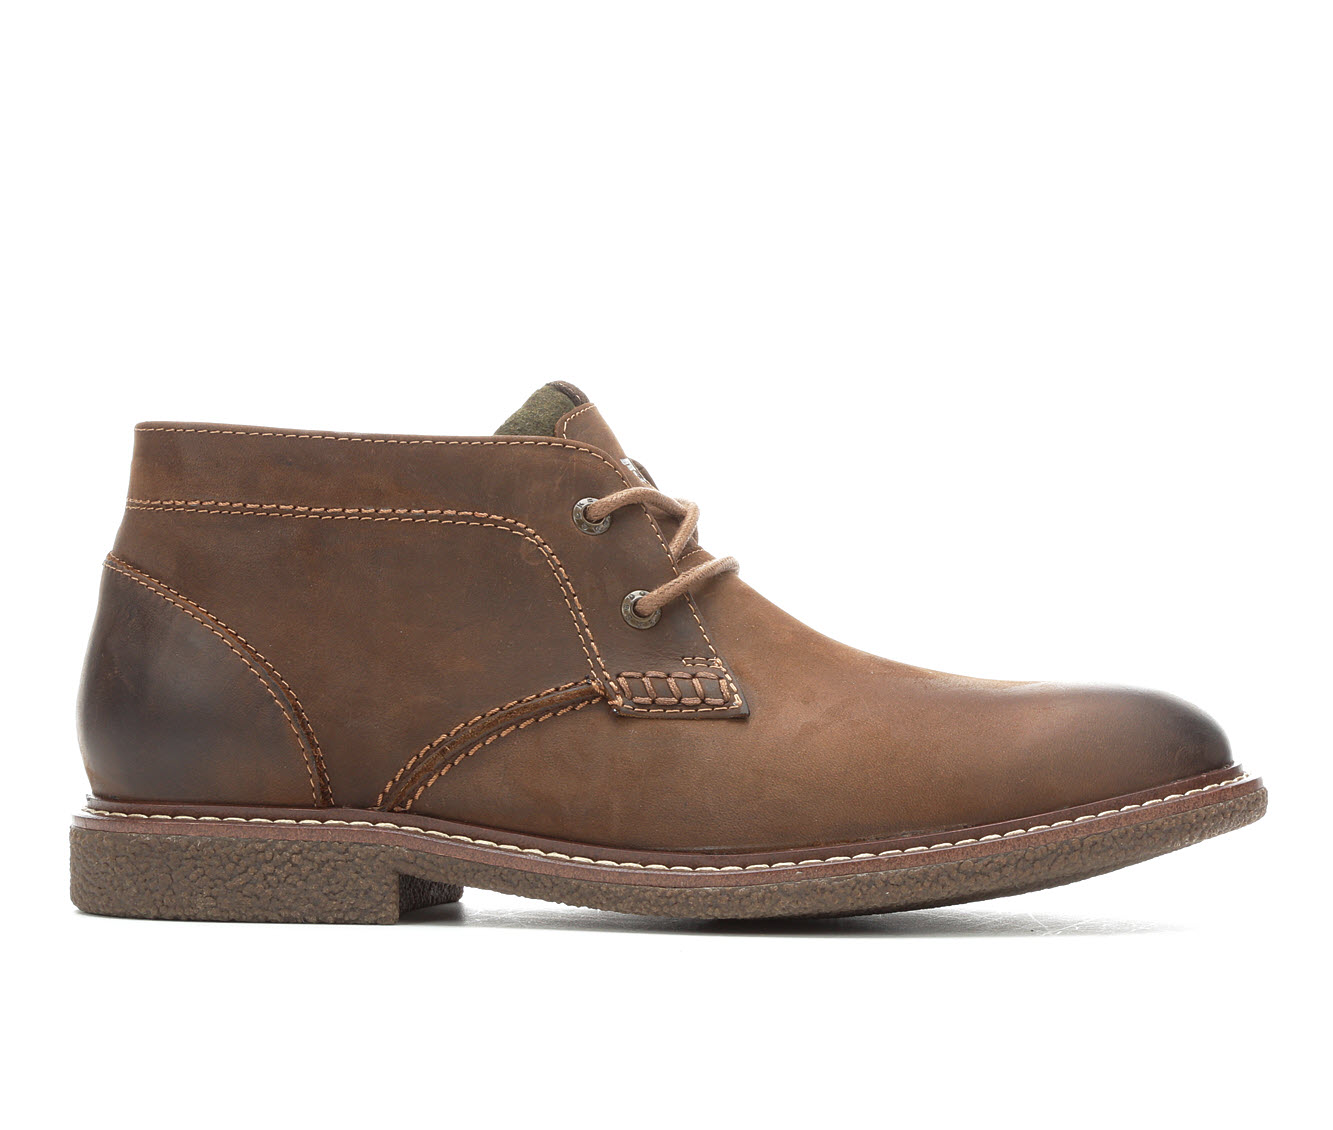 Dockers Grayson Men's Boots (Brown Leather)